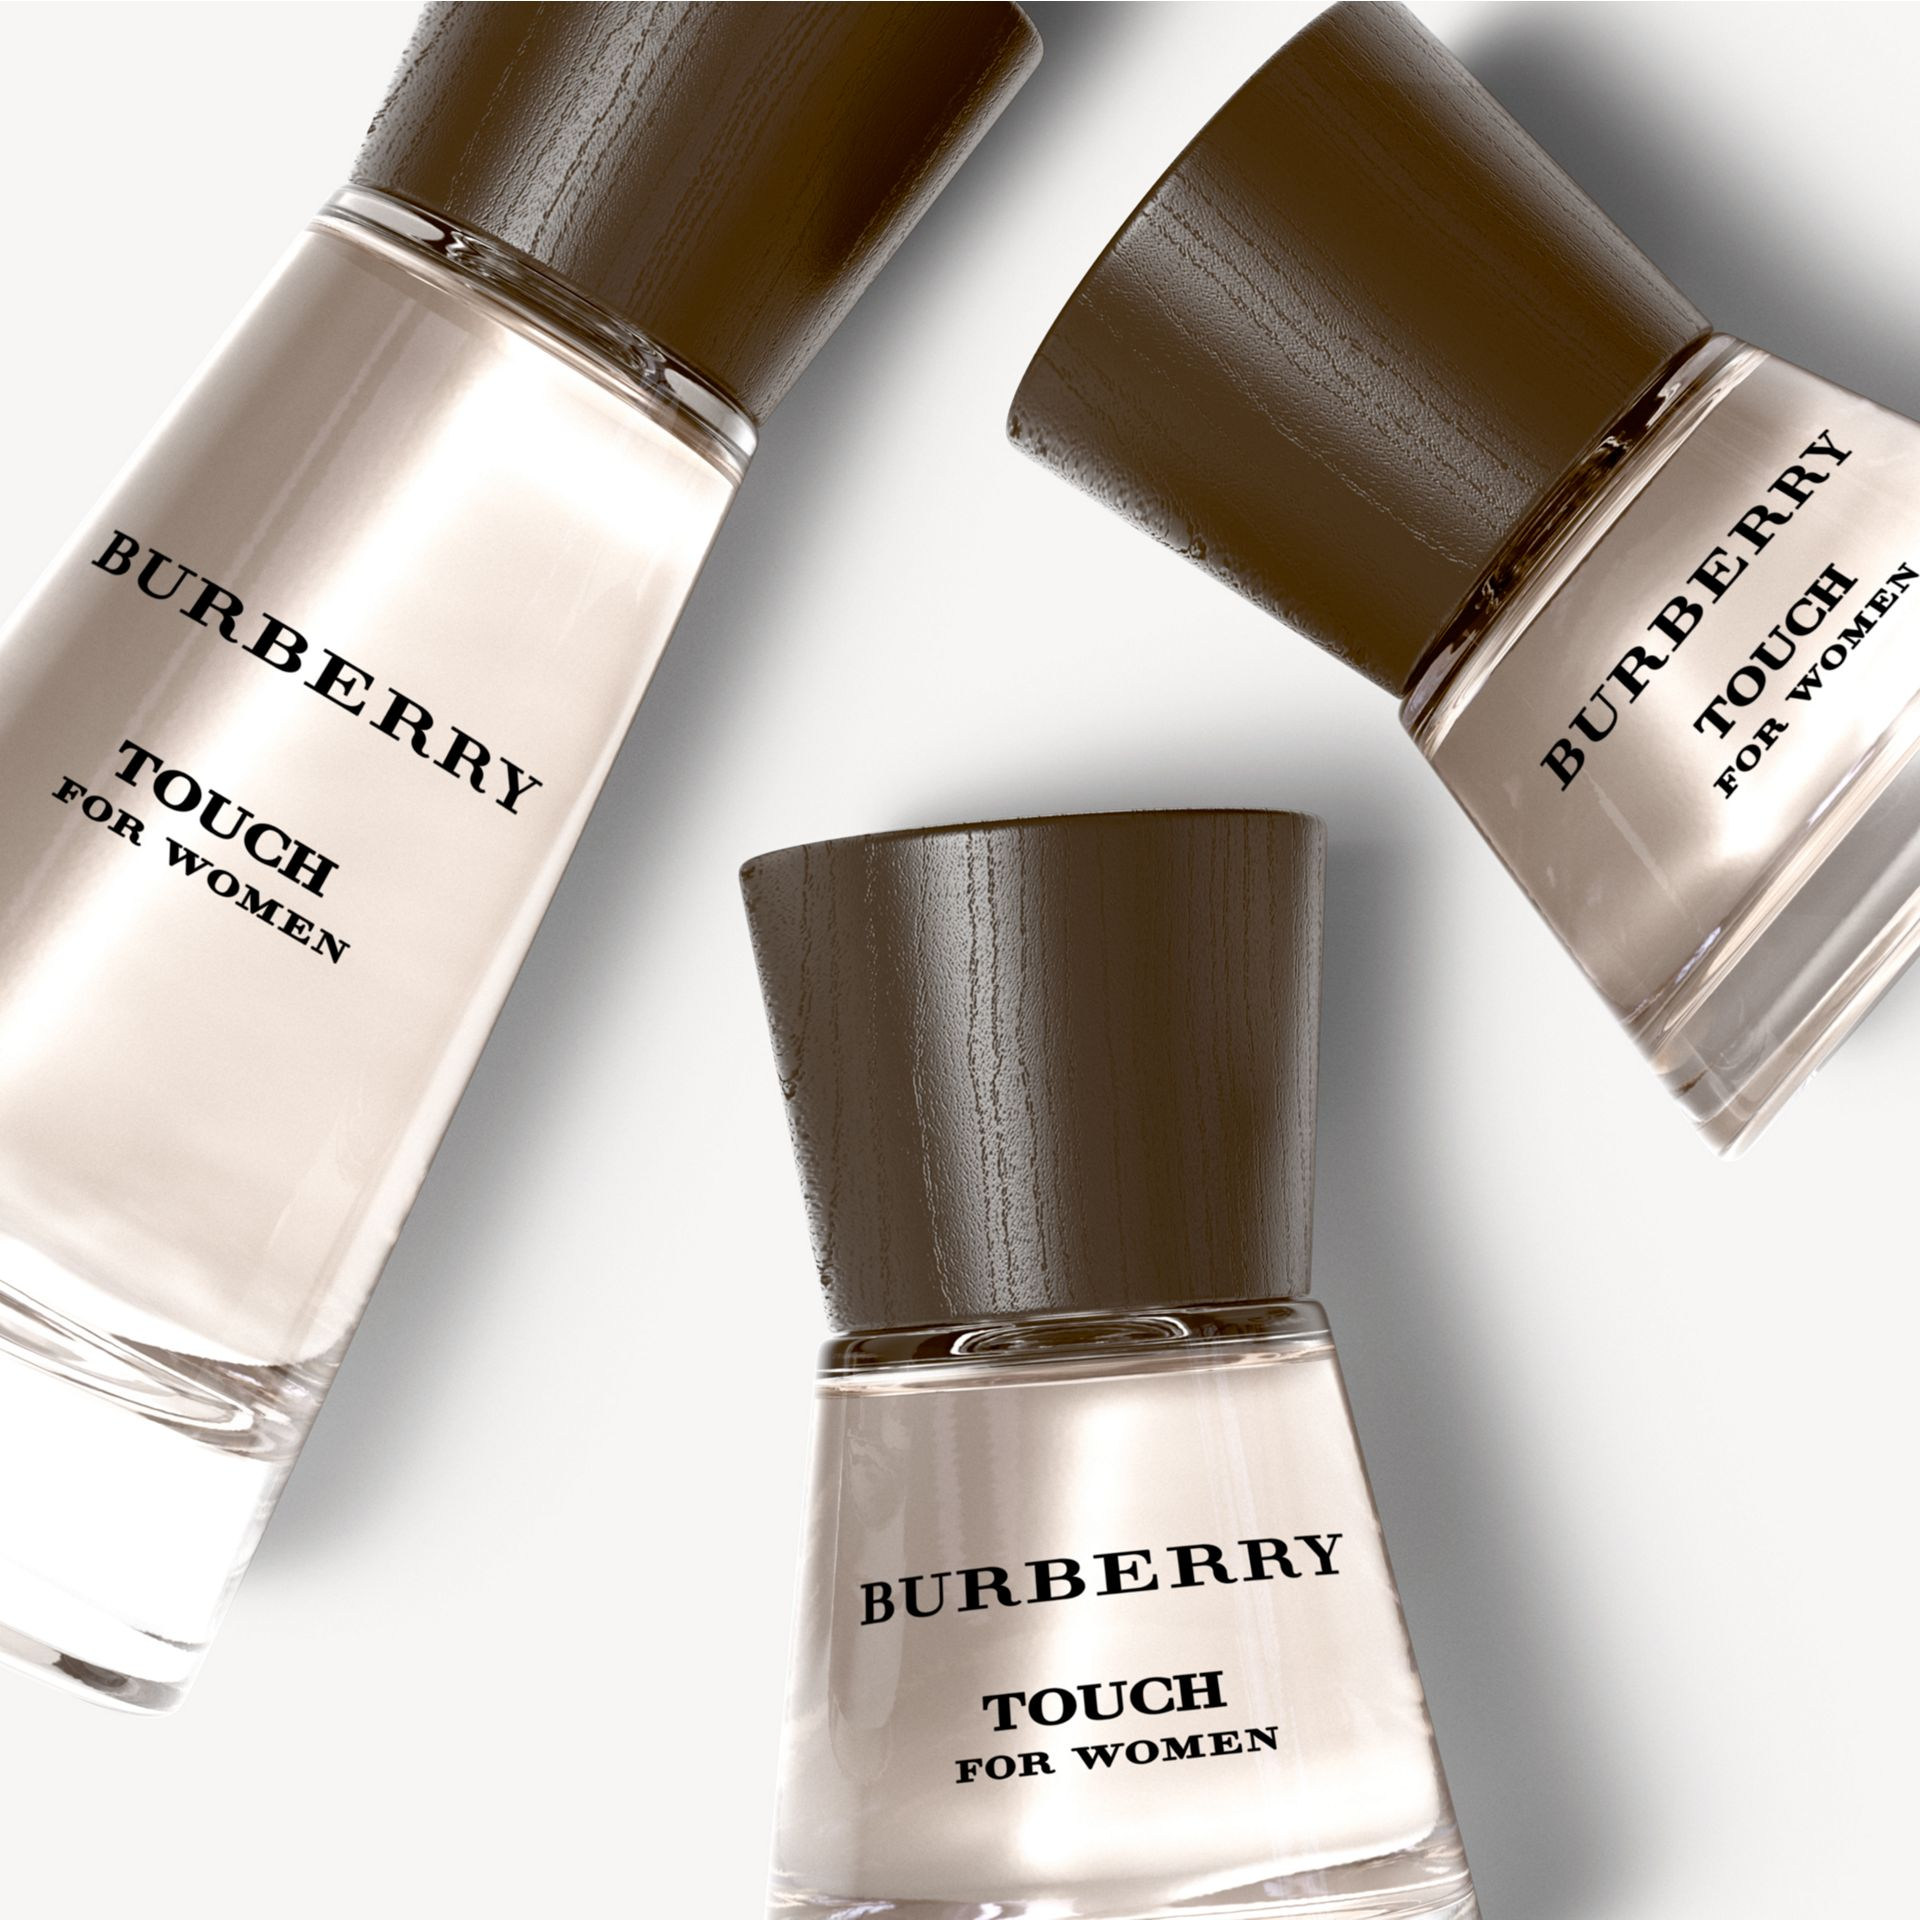 Burberry Touch For Women Eau De Parfum 30ml - Women | Burberry Hong Kong - gallery image 2